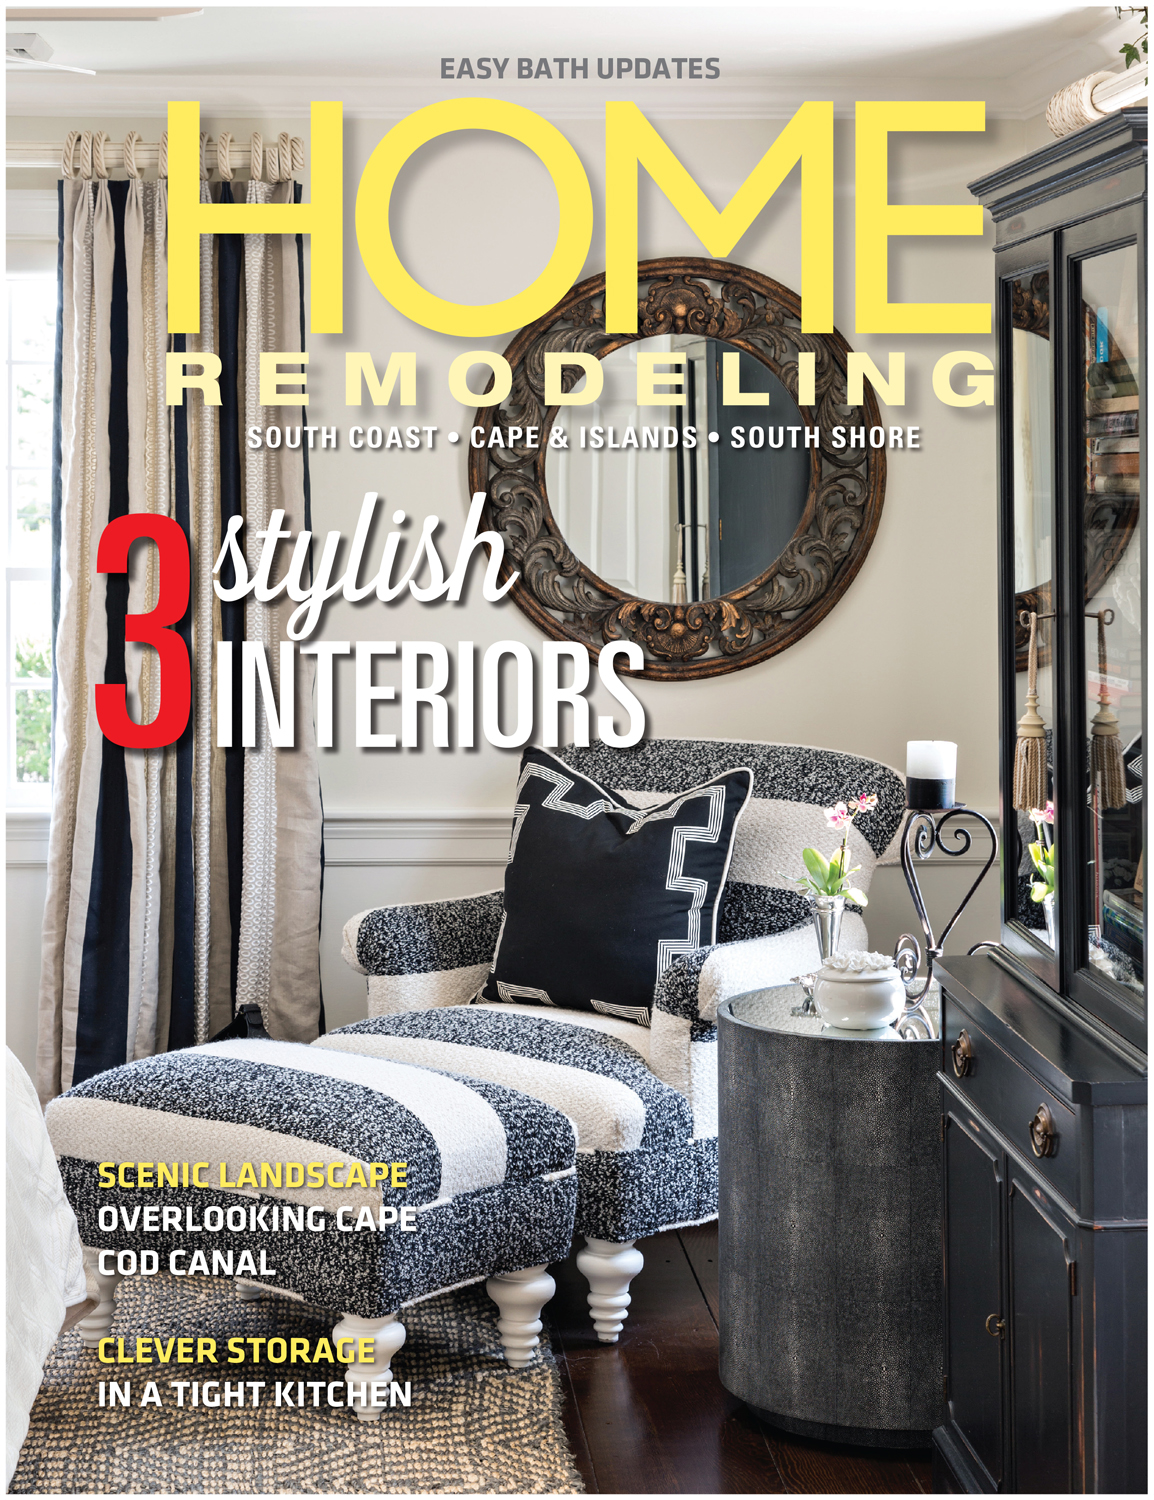 Home Remodeling Magazine